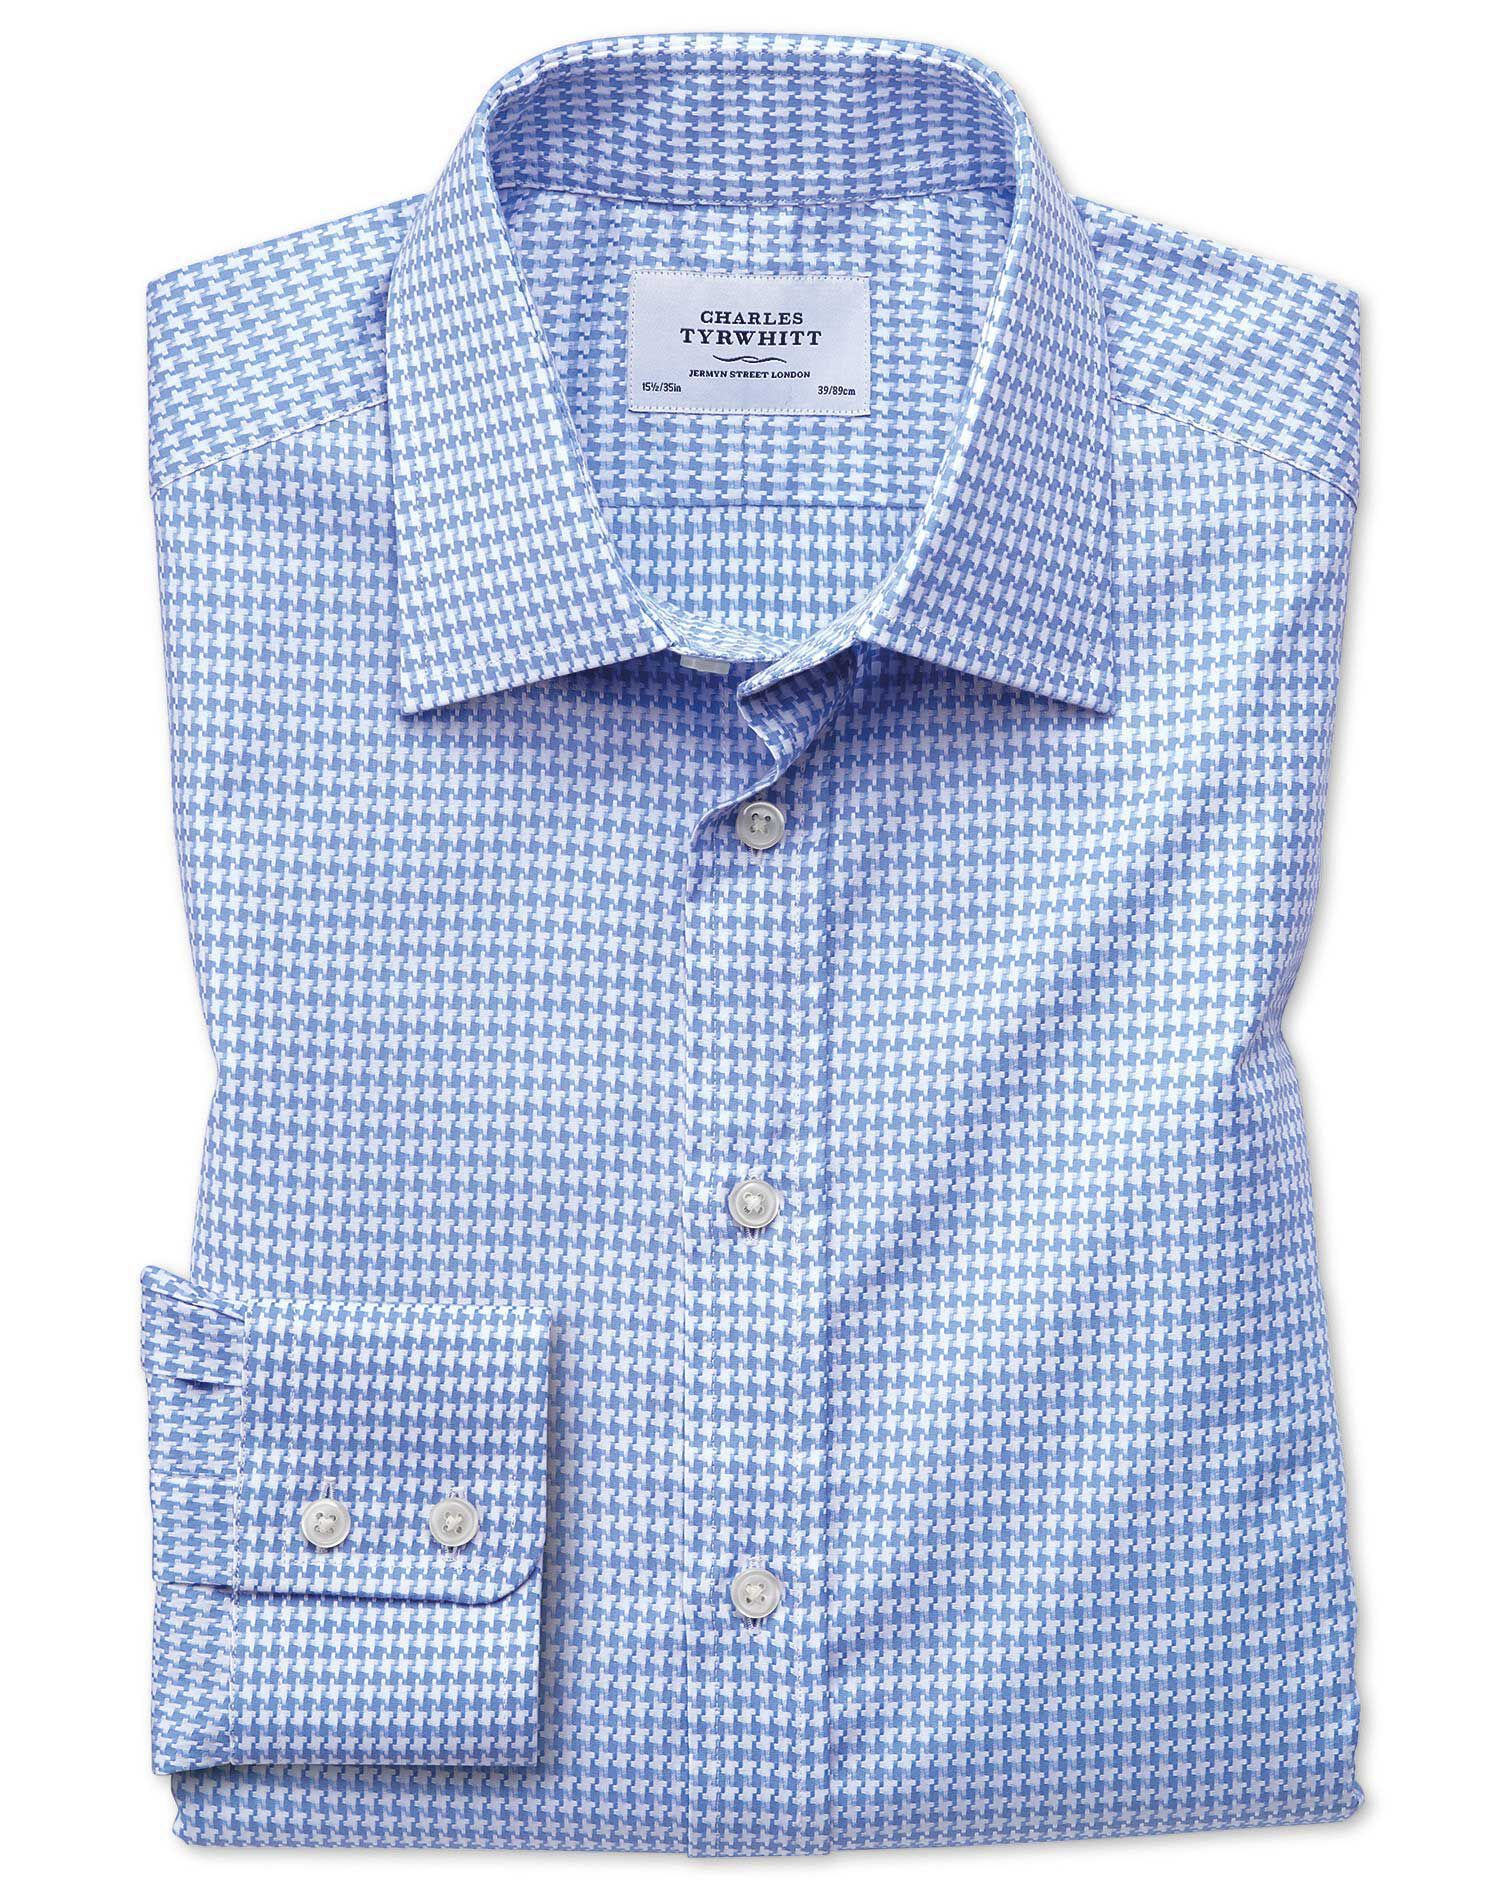 Classic Fit Large Puppytooth Sky Blue Cotton Formal Shirt Single Cuff Size 16/36 by Charles Tyrwhitt